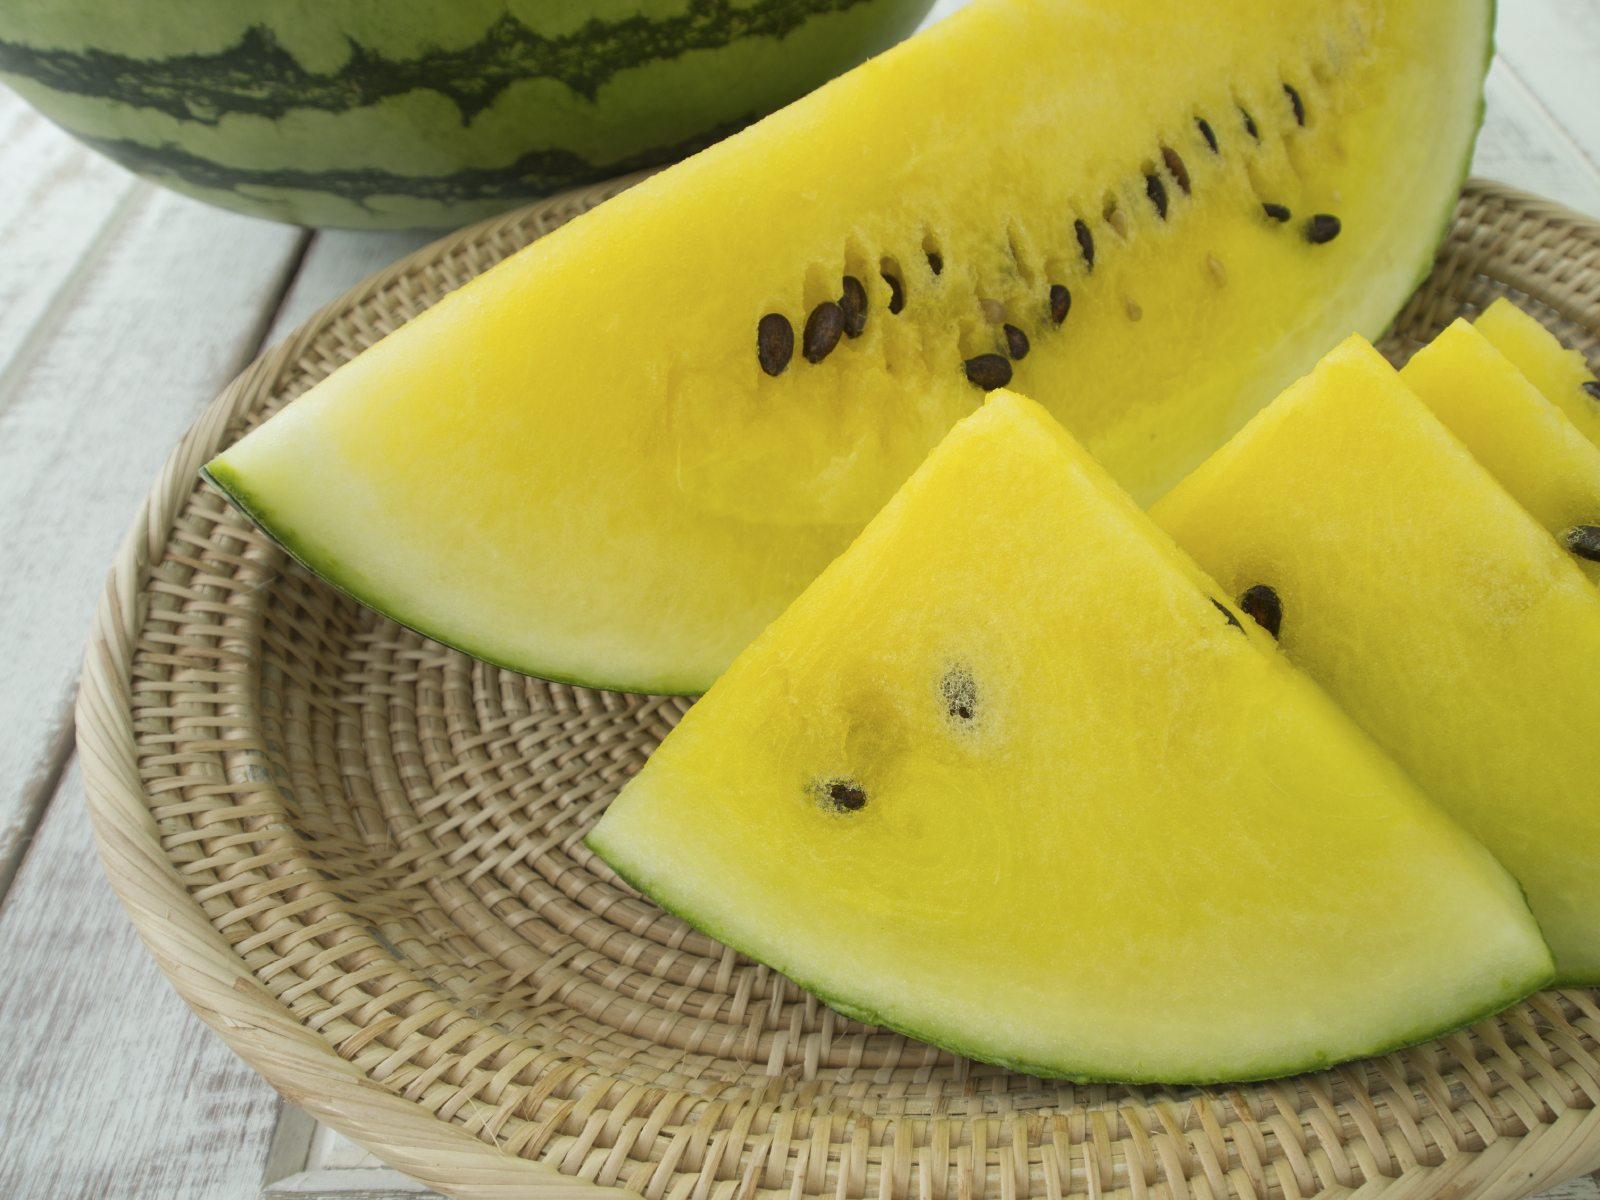 Yellow Watermelon Fruit ? What To Do For Watermelons Turning Yellow